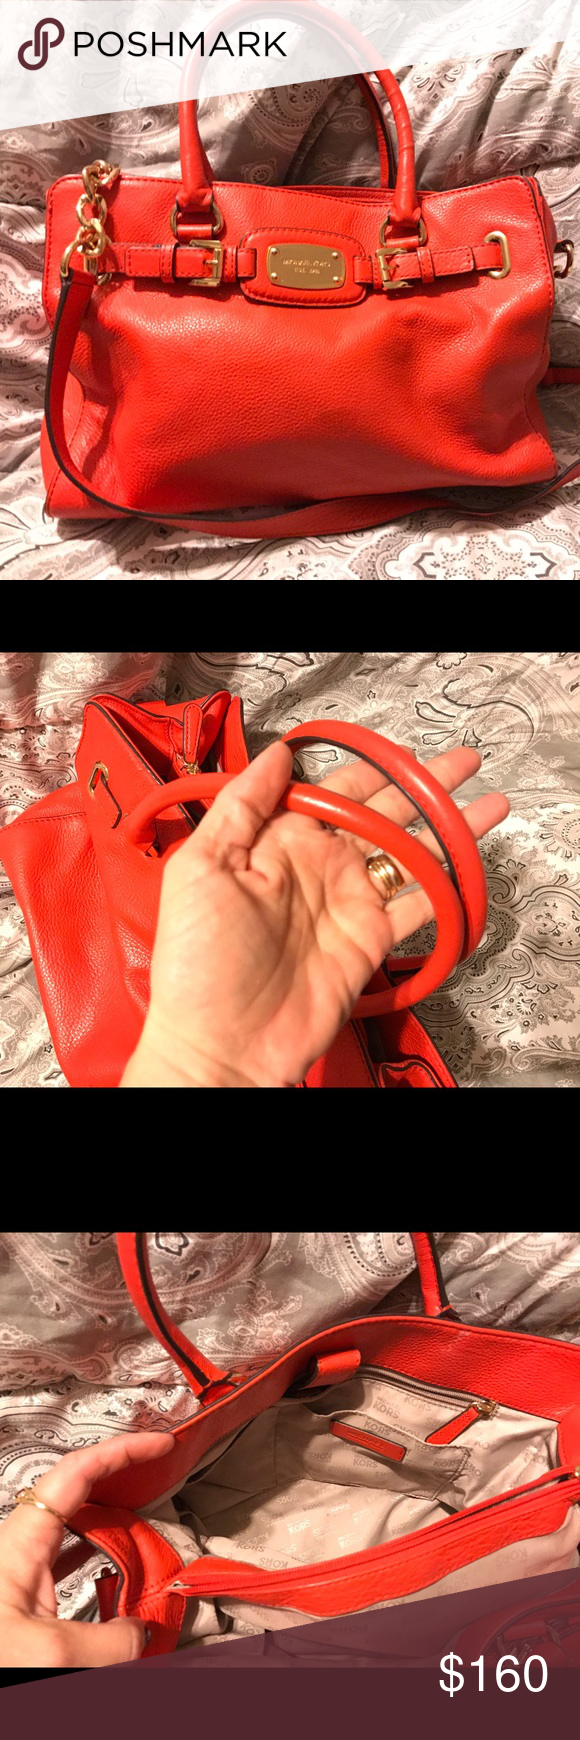 Michael Kors Hamilton - make offer Beautiful deep orange Michael Kors medium Hamilton with gold hardware. Tv higher Michael Kors Bags